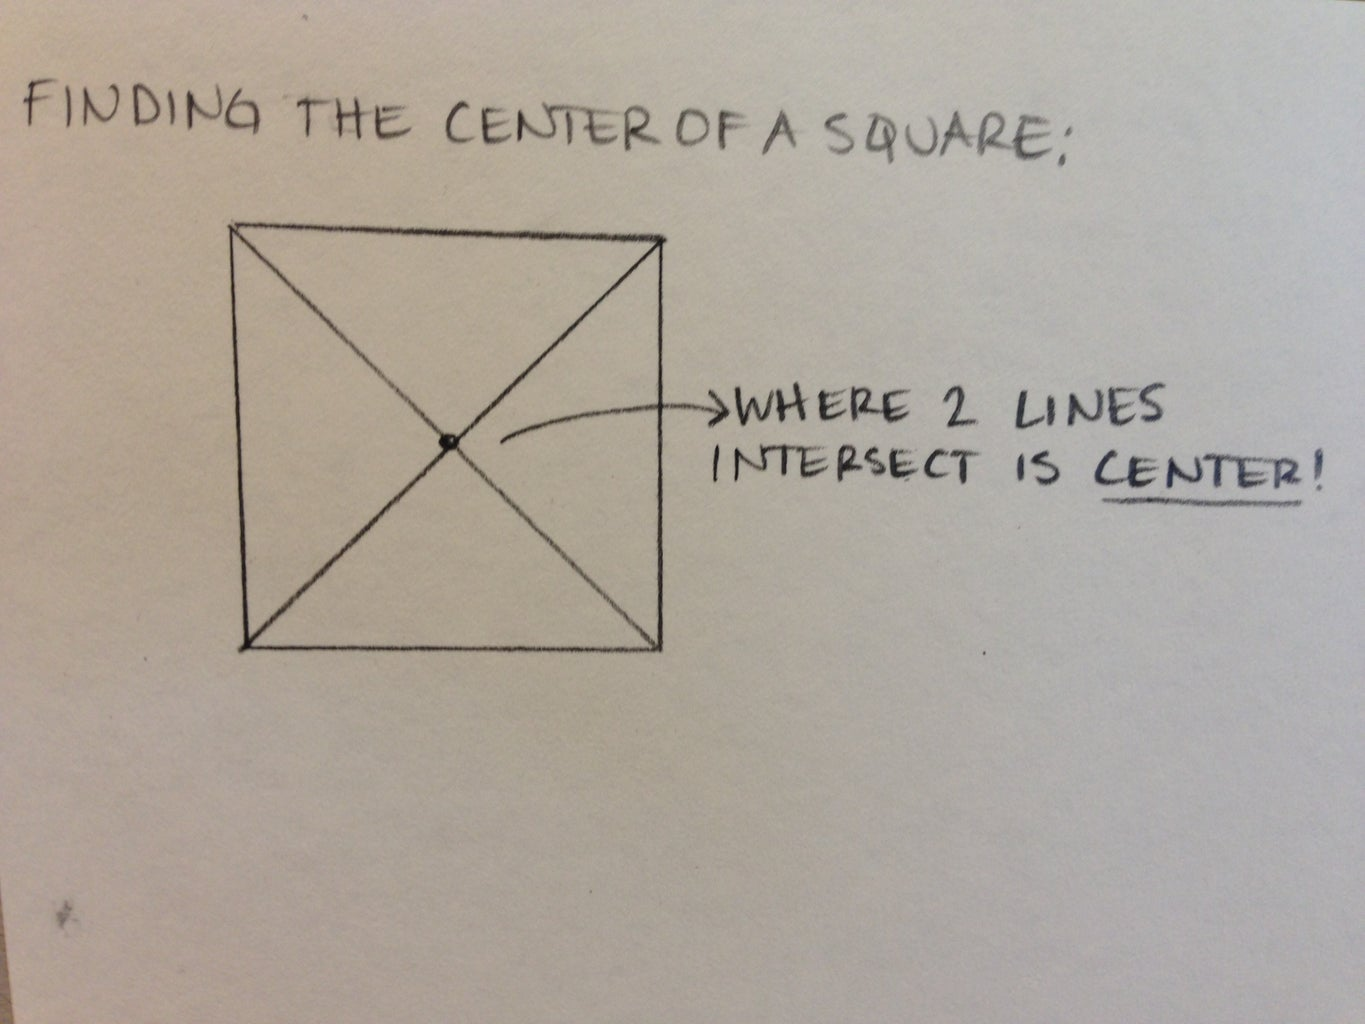 Finding the Center of a Square